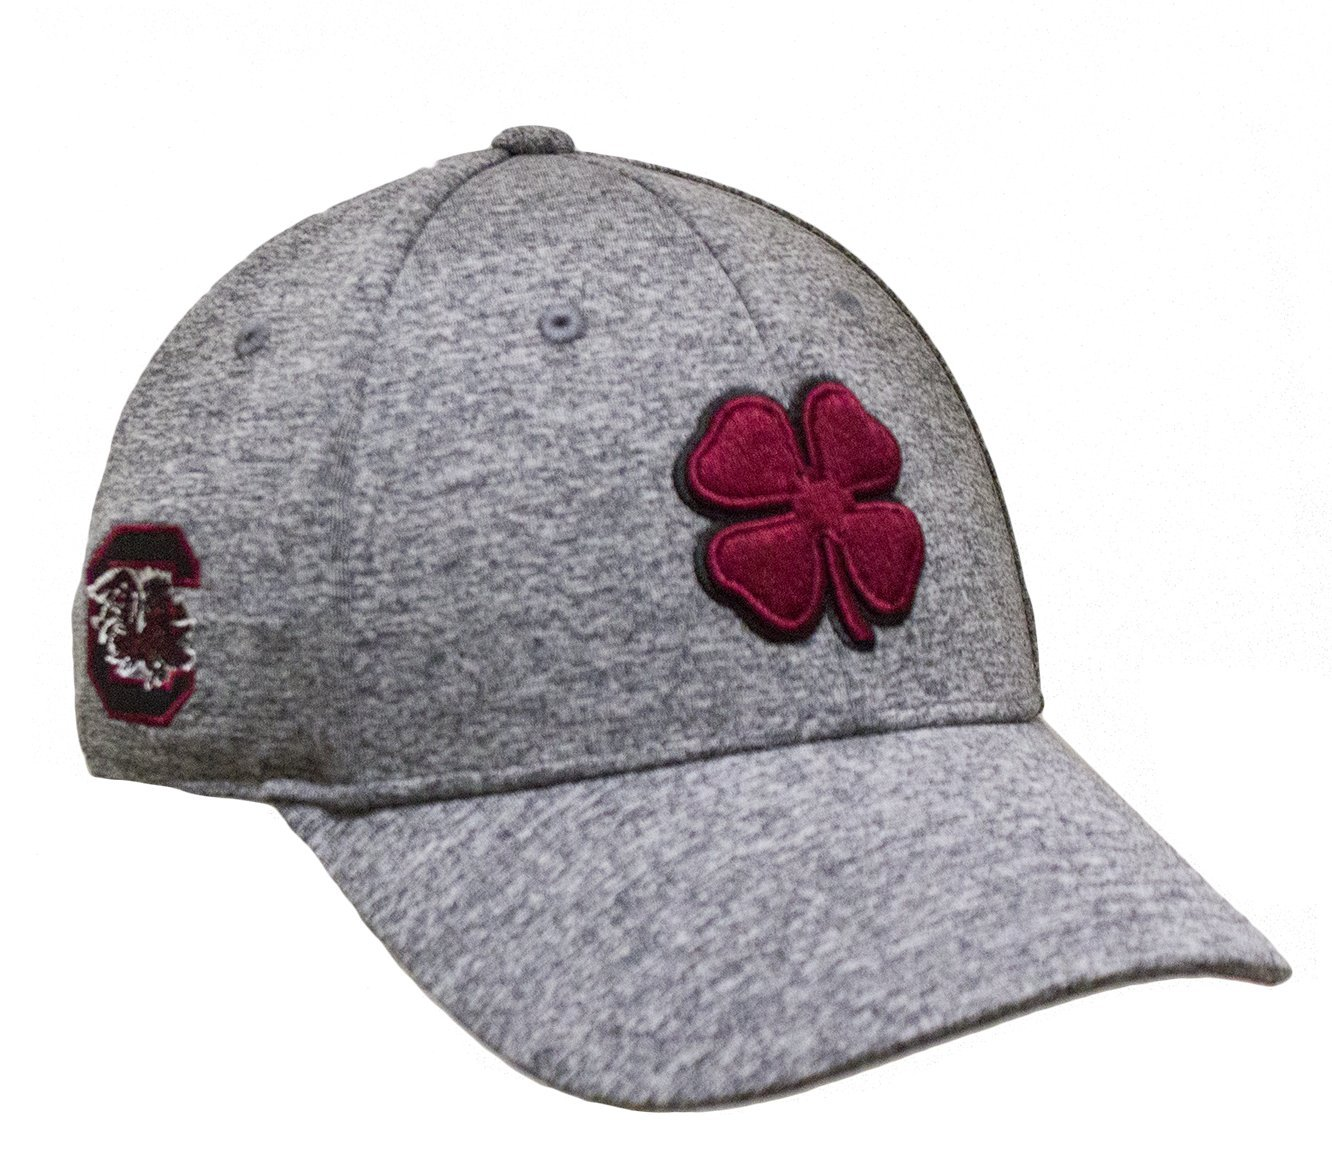 74829aebd43 Amazon.com   NEW Black Clover Live Lucky South Carolina Gamecocks Grey Red  Fitted L XL Hat   Sports   Outdoors